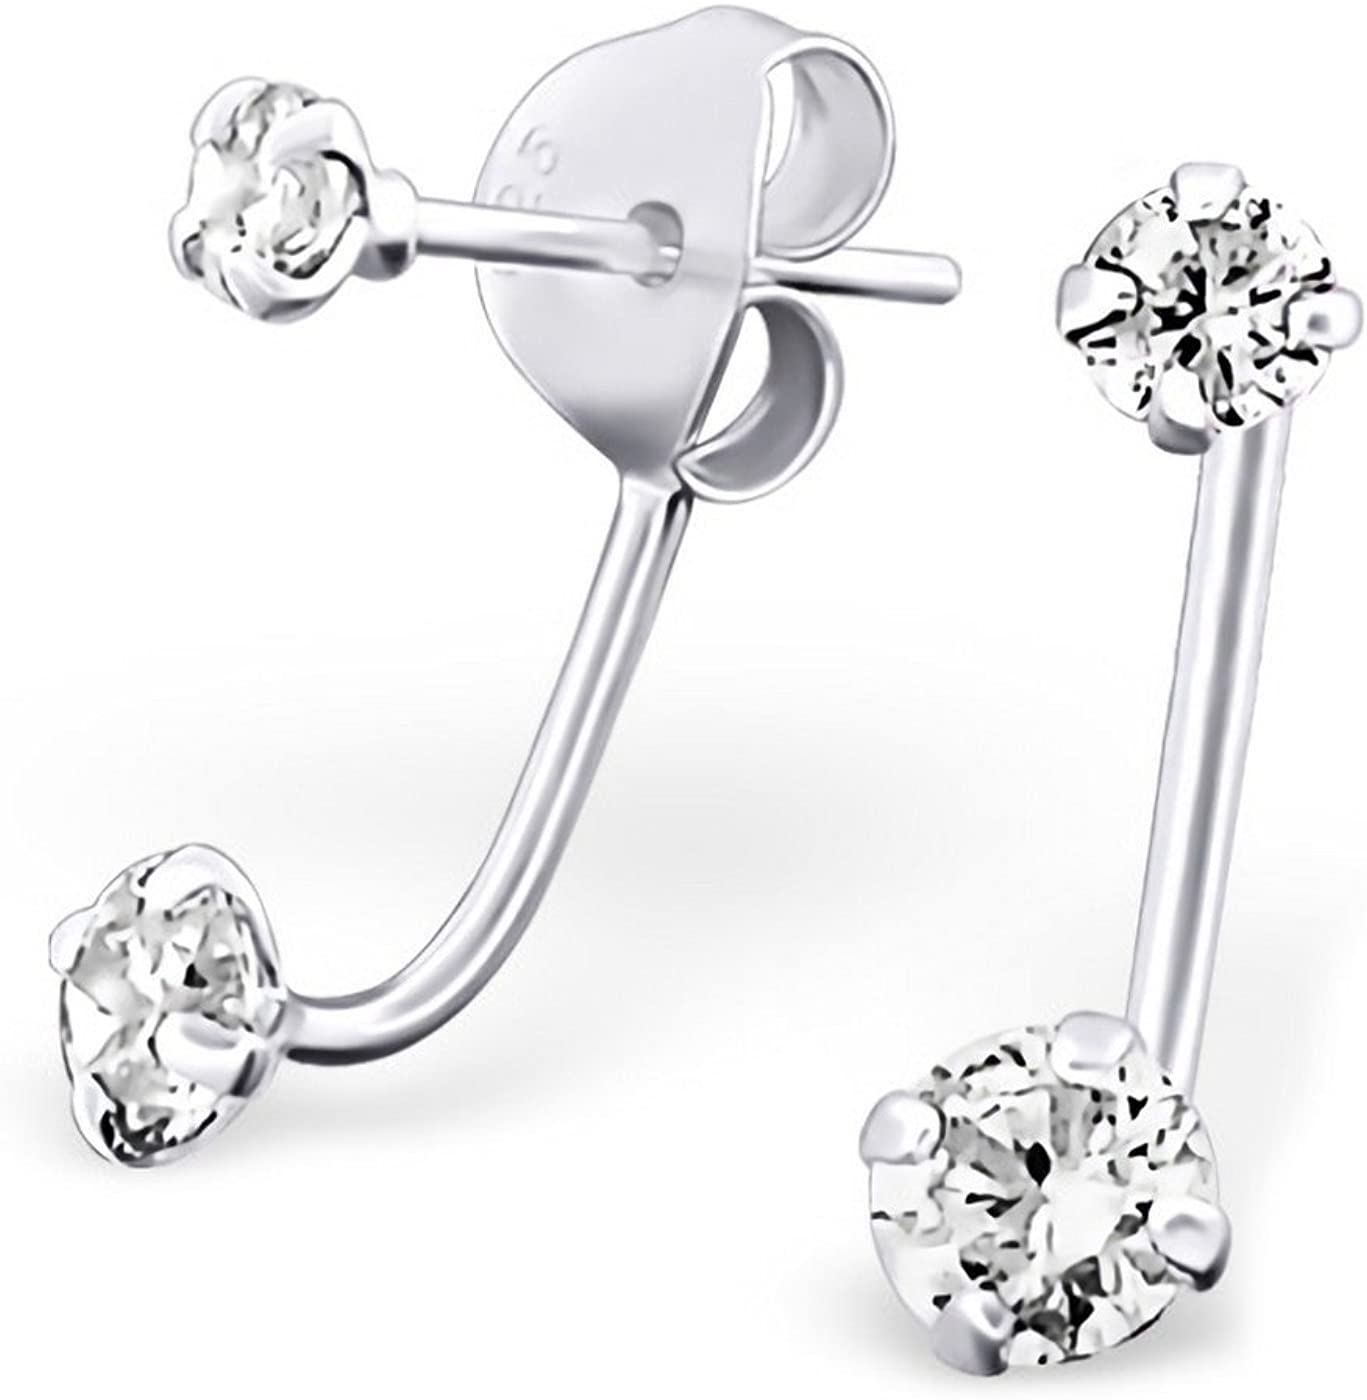 Complete Free Shipping High quality Unique Hanging Round Studs with Zirconia Sterling Cubic Silv 925